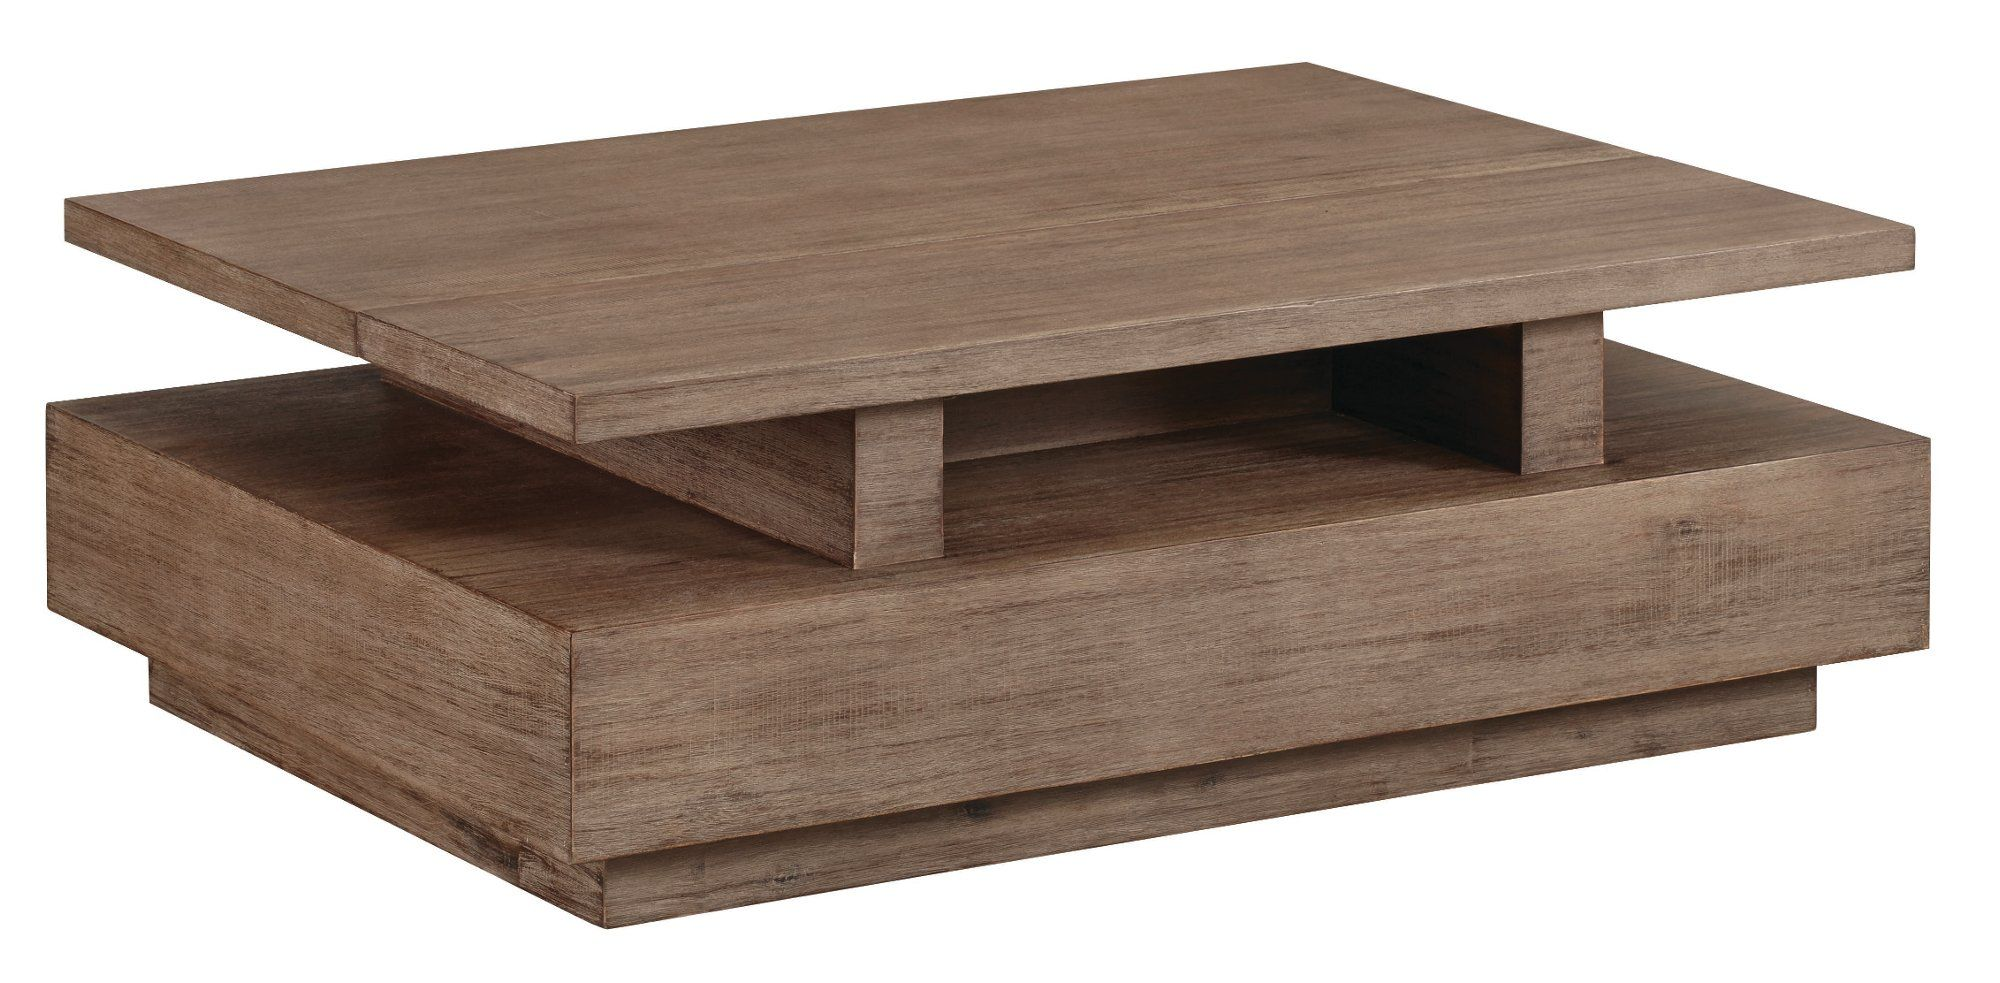 Rustic Brown Lift Top Coffee Table With Storage Slade Rc Willey Furniture Store Coffee Table 3 Piece Coffee Table Set Coffee Table With Casters [ 983 x 2000 Pixel ]